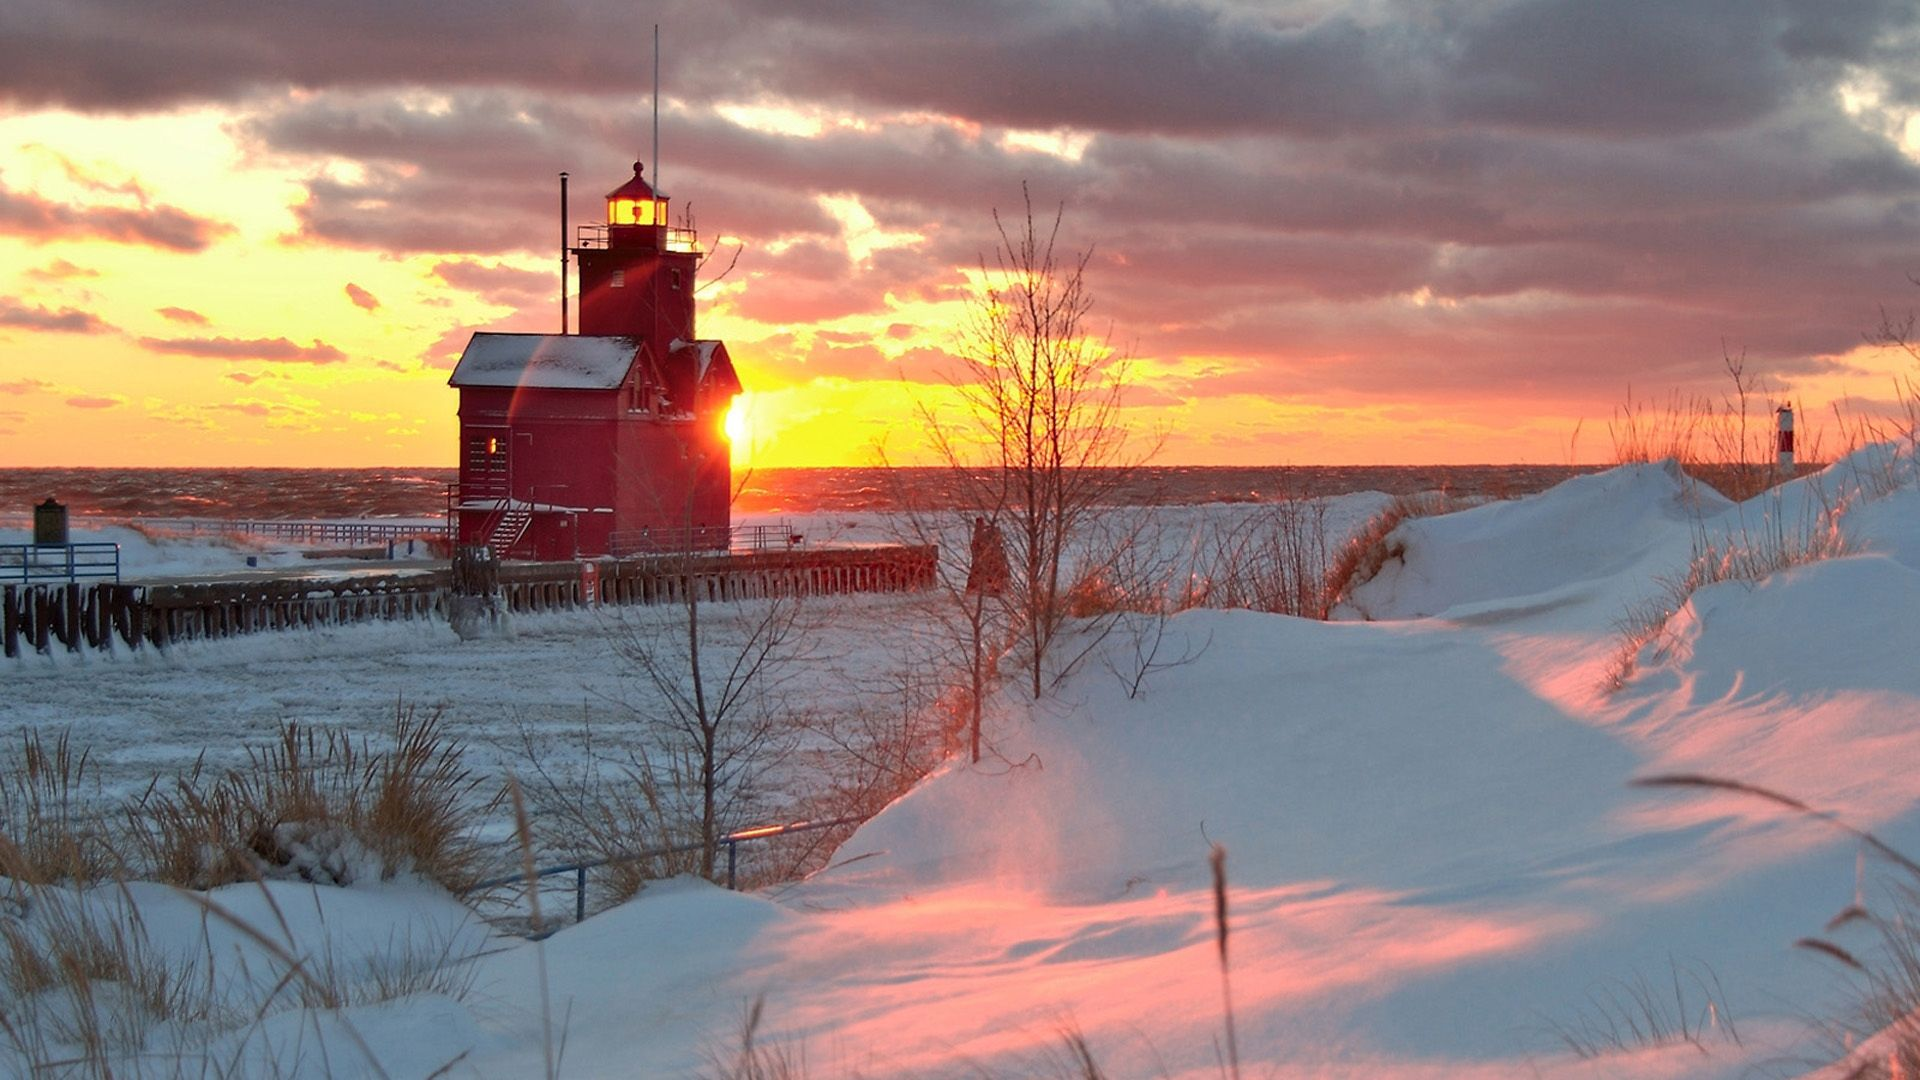 beautiful red lighthouse on a winter morning hd desktop background rh pinterest co kr